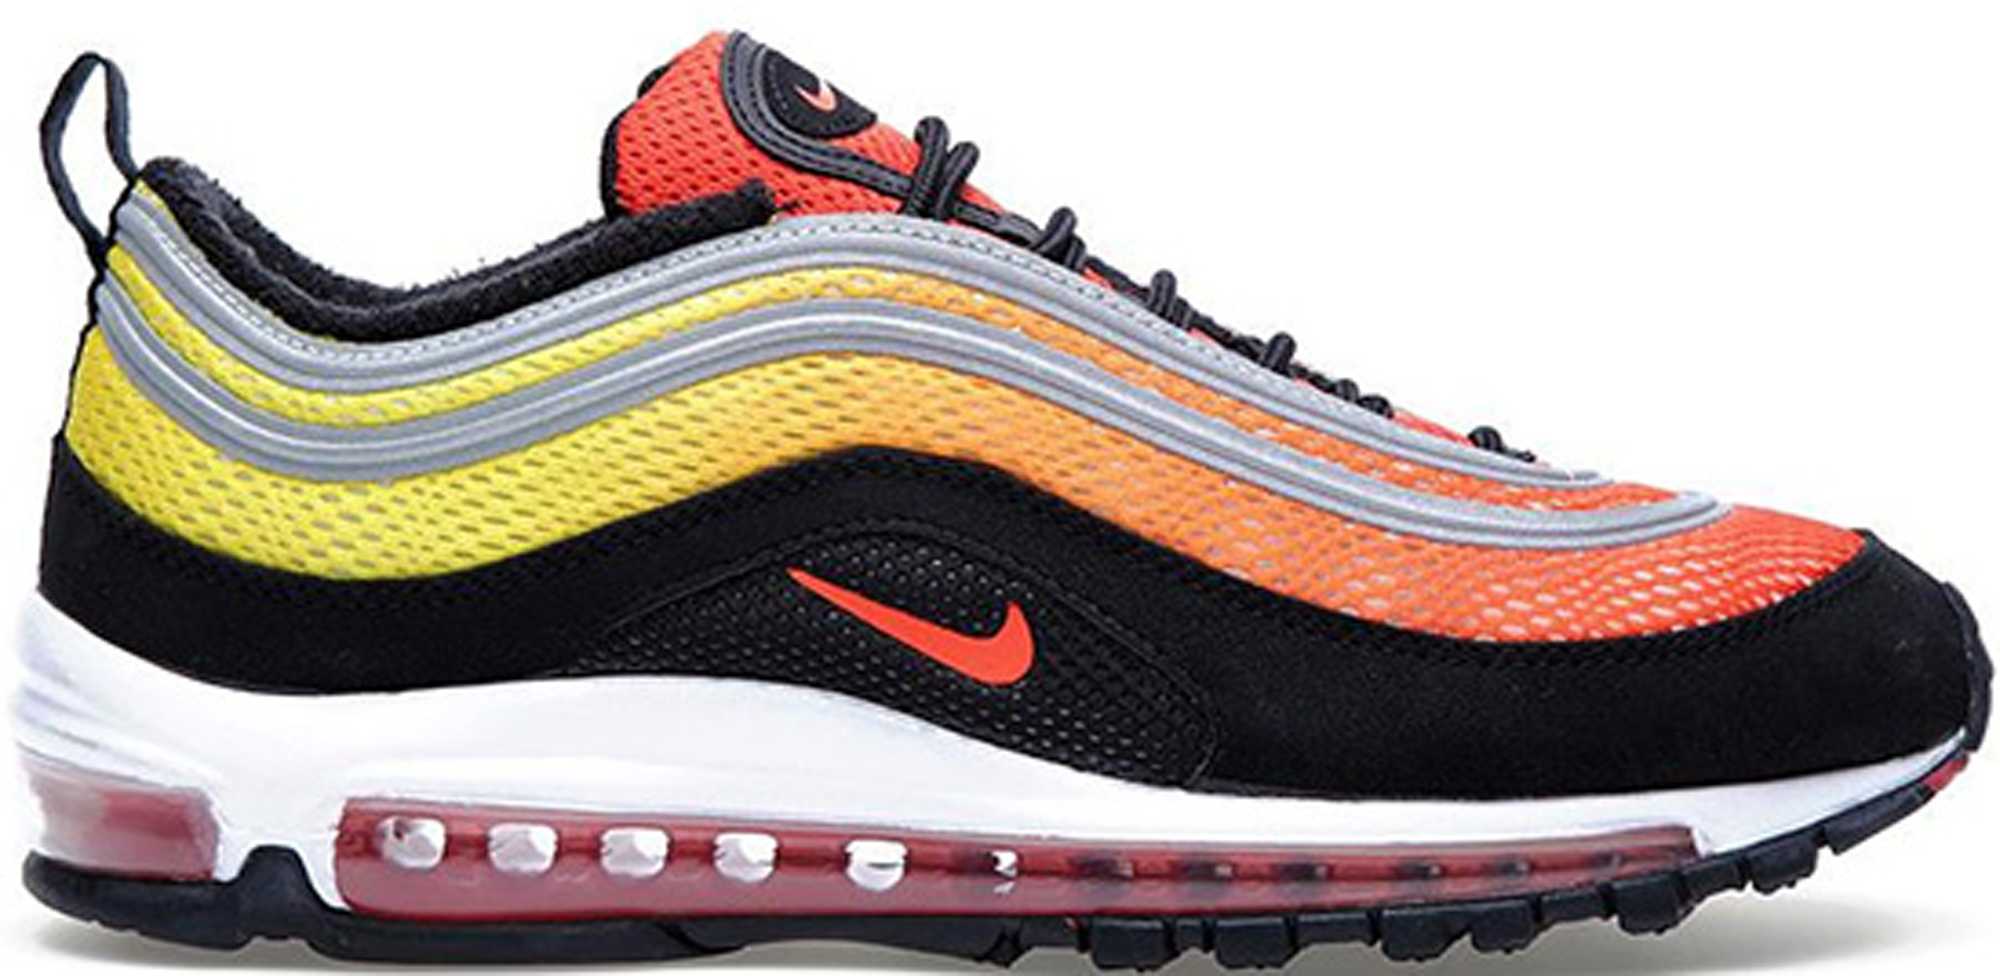 Nike Air Max 97 Sunset Model Aviation